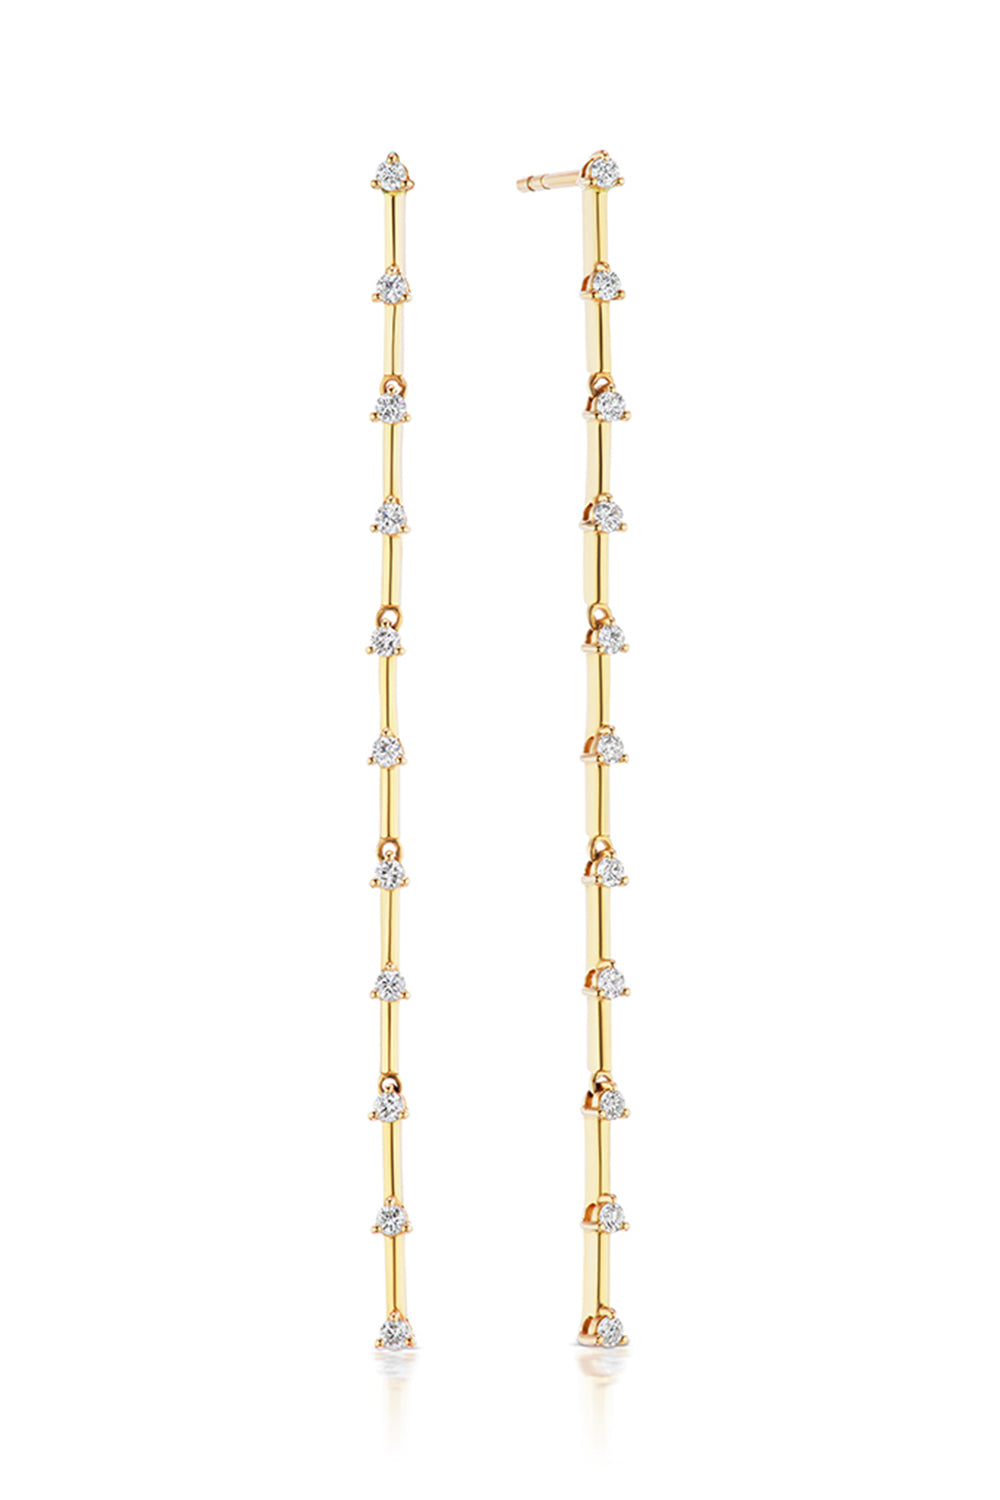 The Stand Out Earrings in Yellow Gold